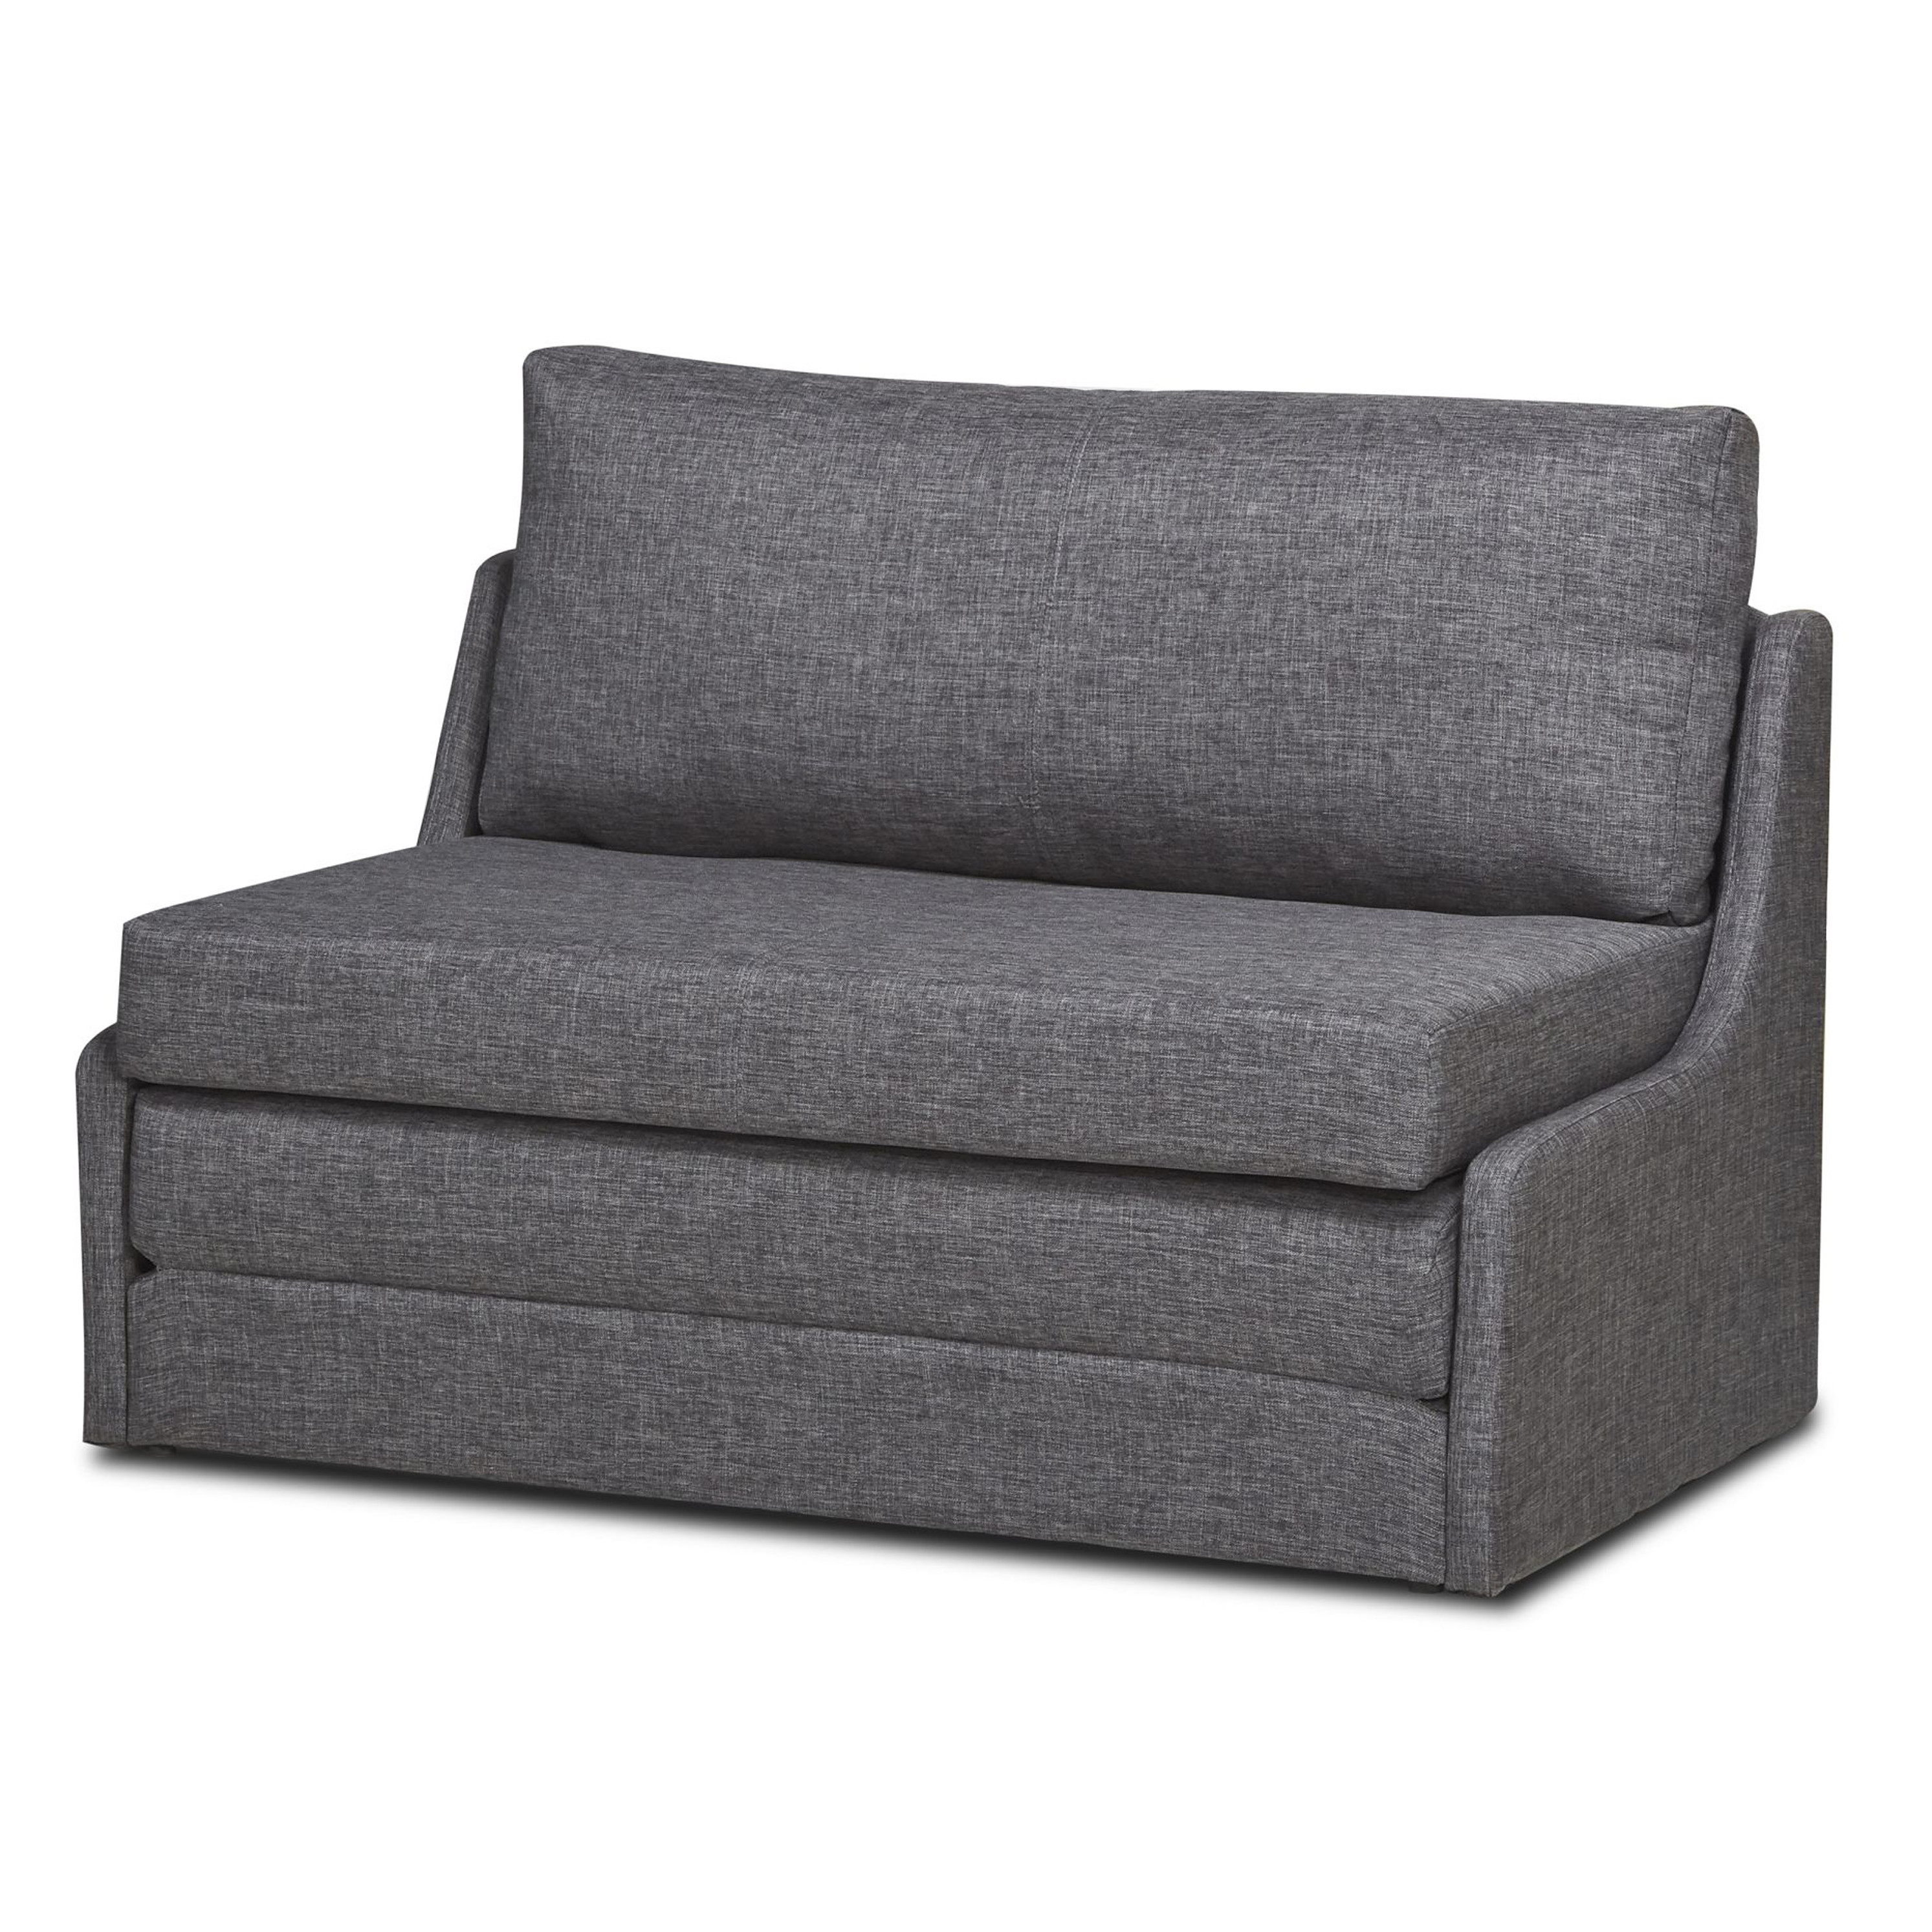 Loveseat Sleeper | Sleeper Loveseat Ikea | Leather Reclining Loveseat